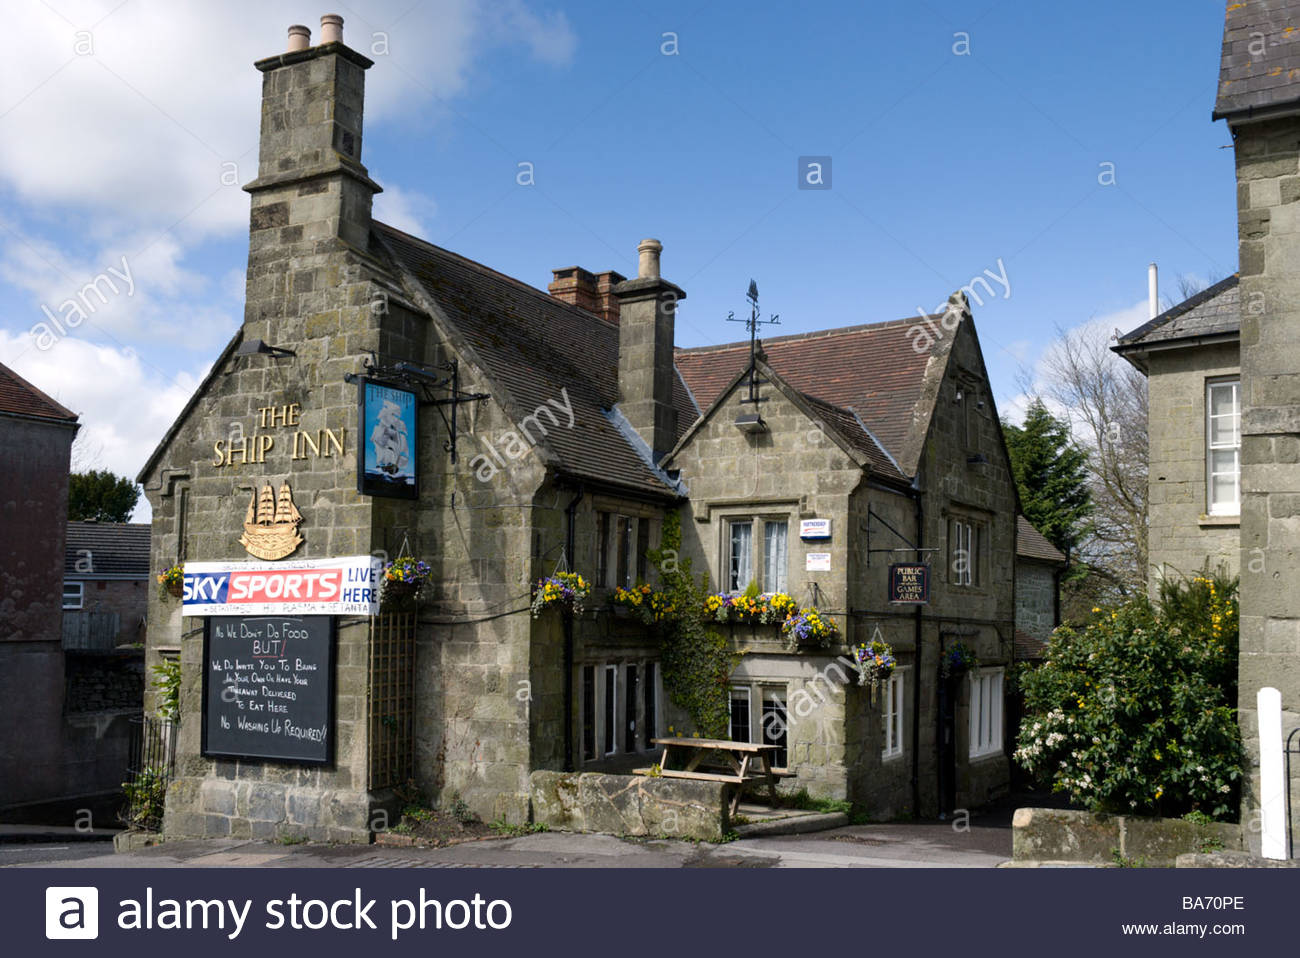 View of The Ship Inn  at Shaftesbury, Dorset, England, UK - Stock Image